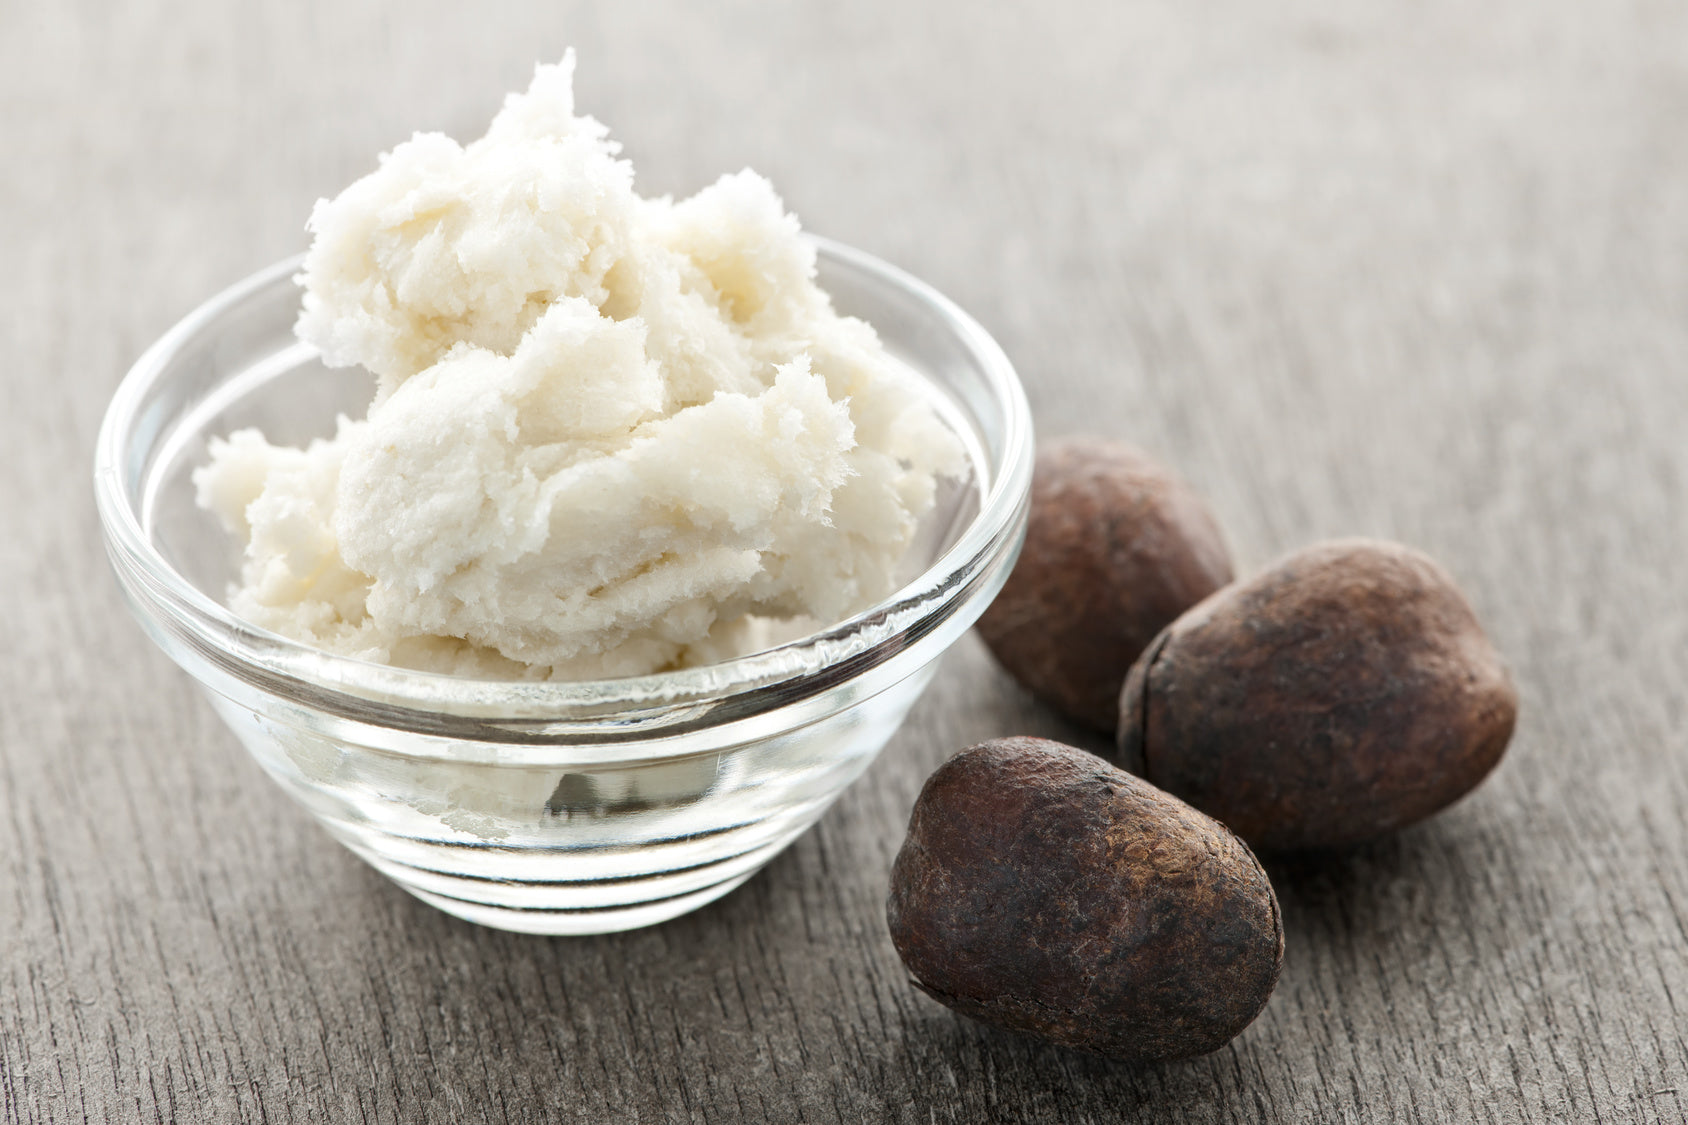 WHY SHEA BUTTER WORKS AS A MOISTURIZER